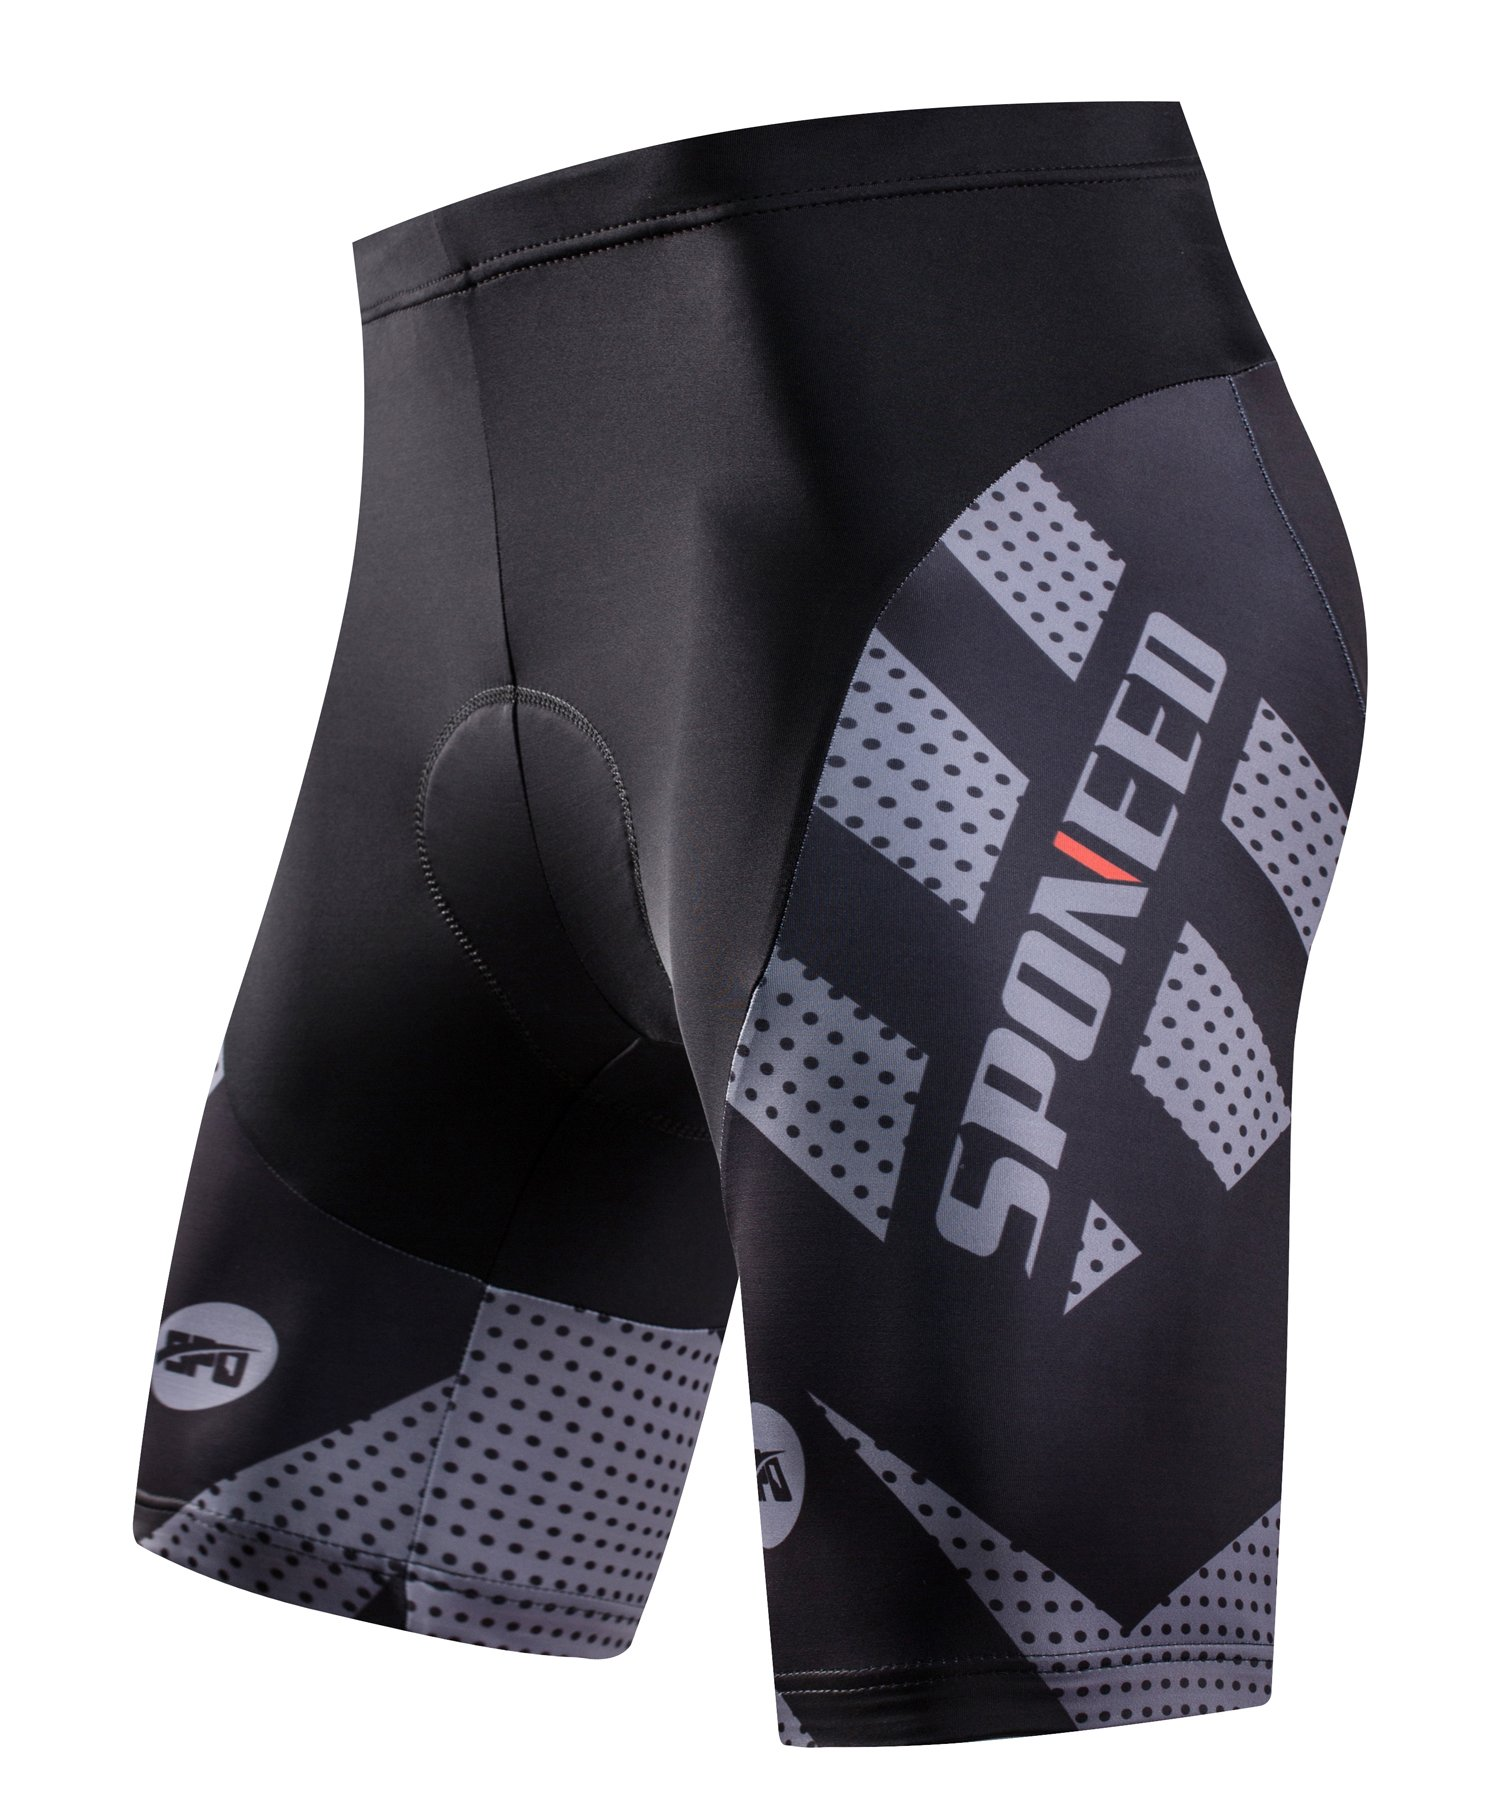 23ba254c515 sponeed Men s Cycling Shorts Padded Bicycle Riding Pants Bike Biking Clothes  Cycle Wear Tights product image